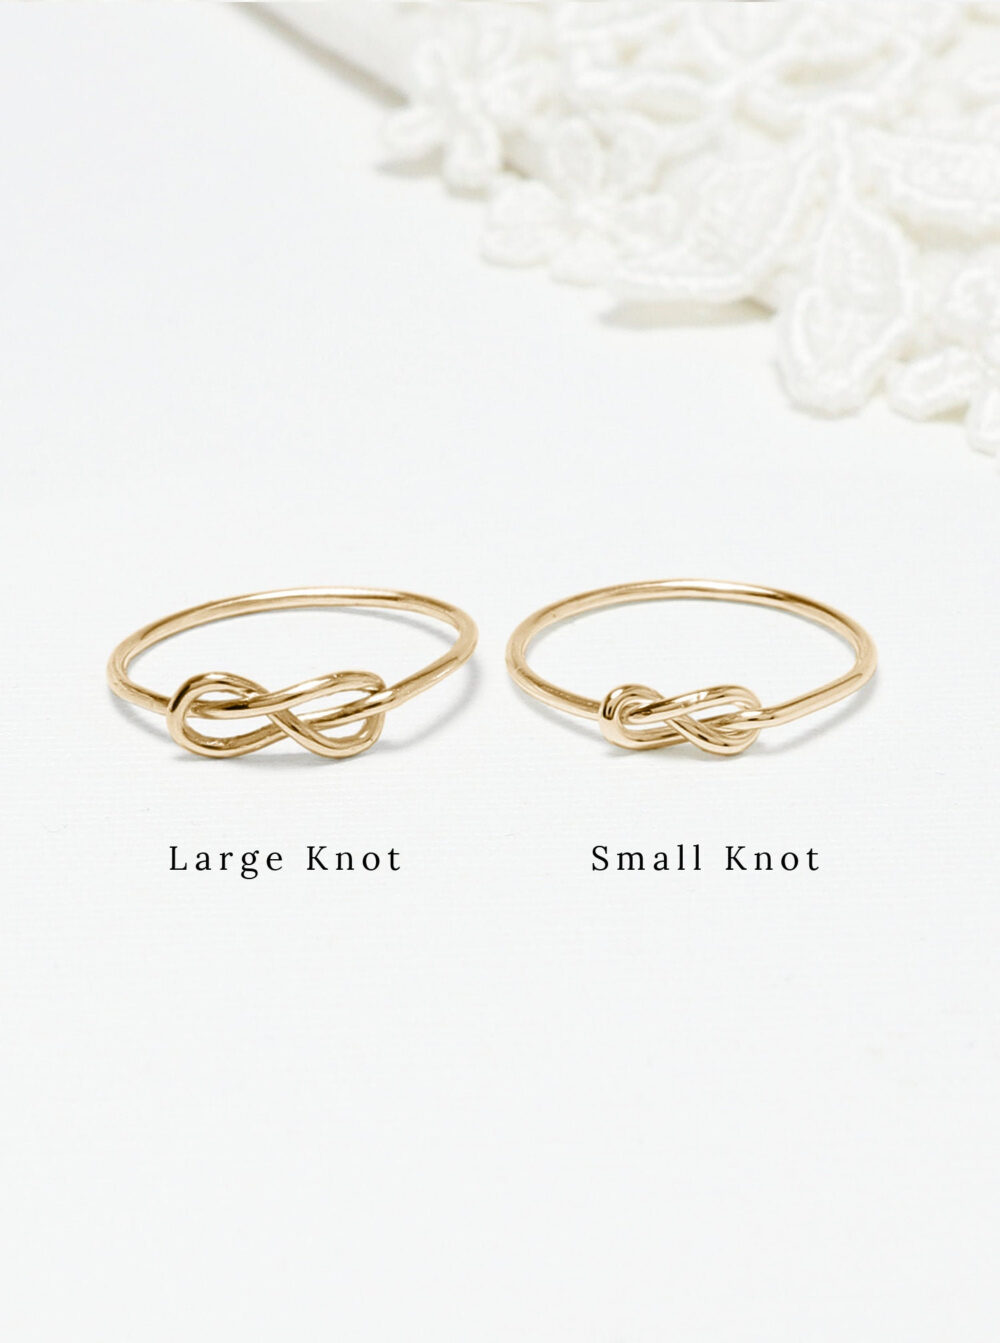 Tiny Thin Gold Infinity Knot Ring, Dainty Promise Love Sister Mother Daughter Rings, Delicate Minimalist 14K Gift | Unity Rings